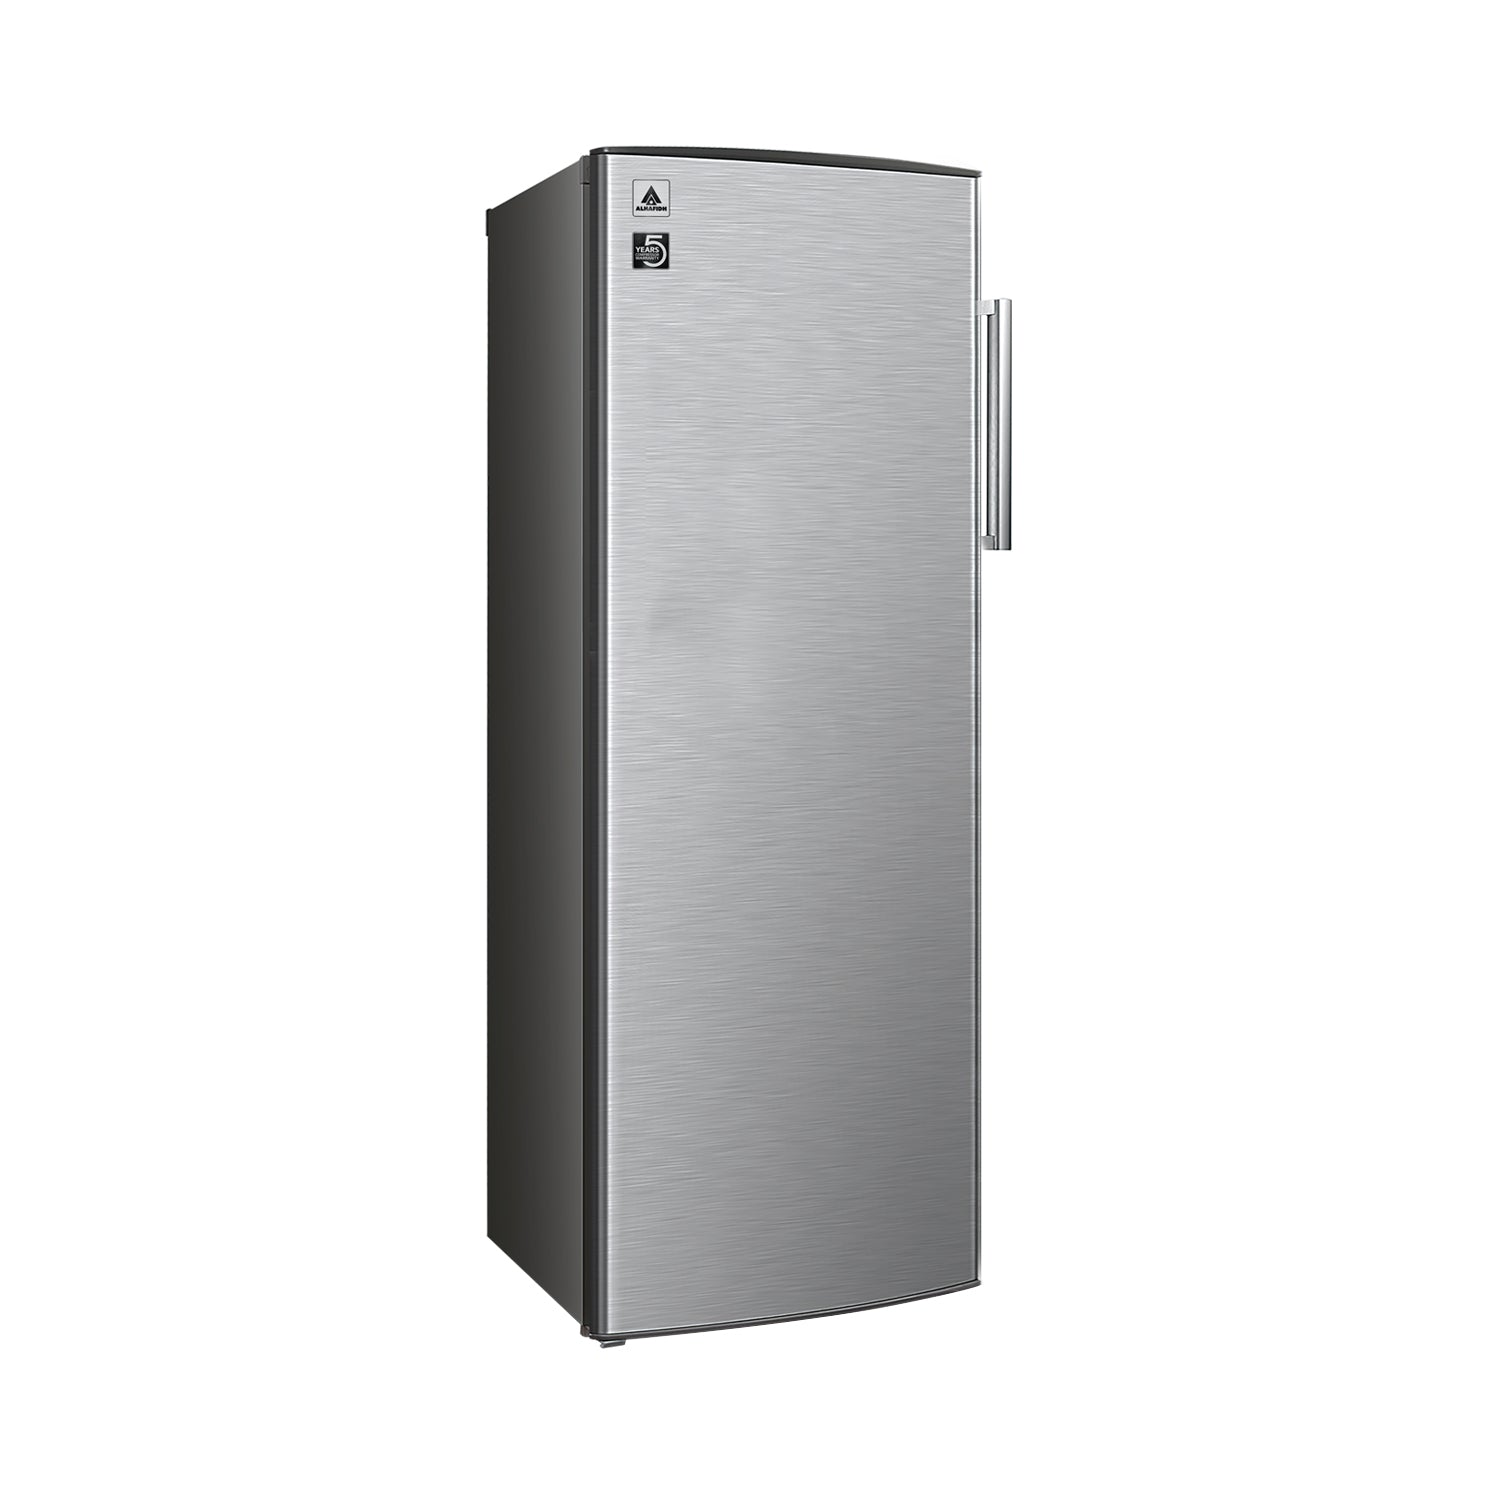 15CF Direct Cool Single Door Refrigerator